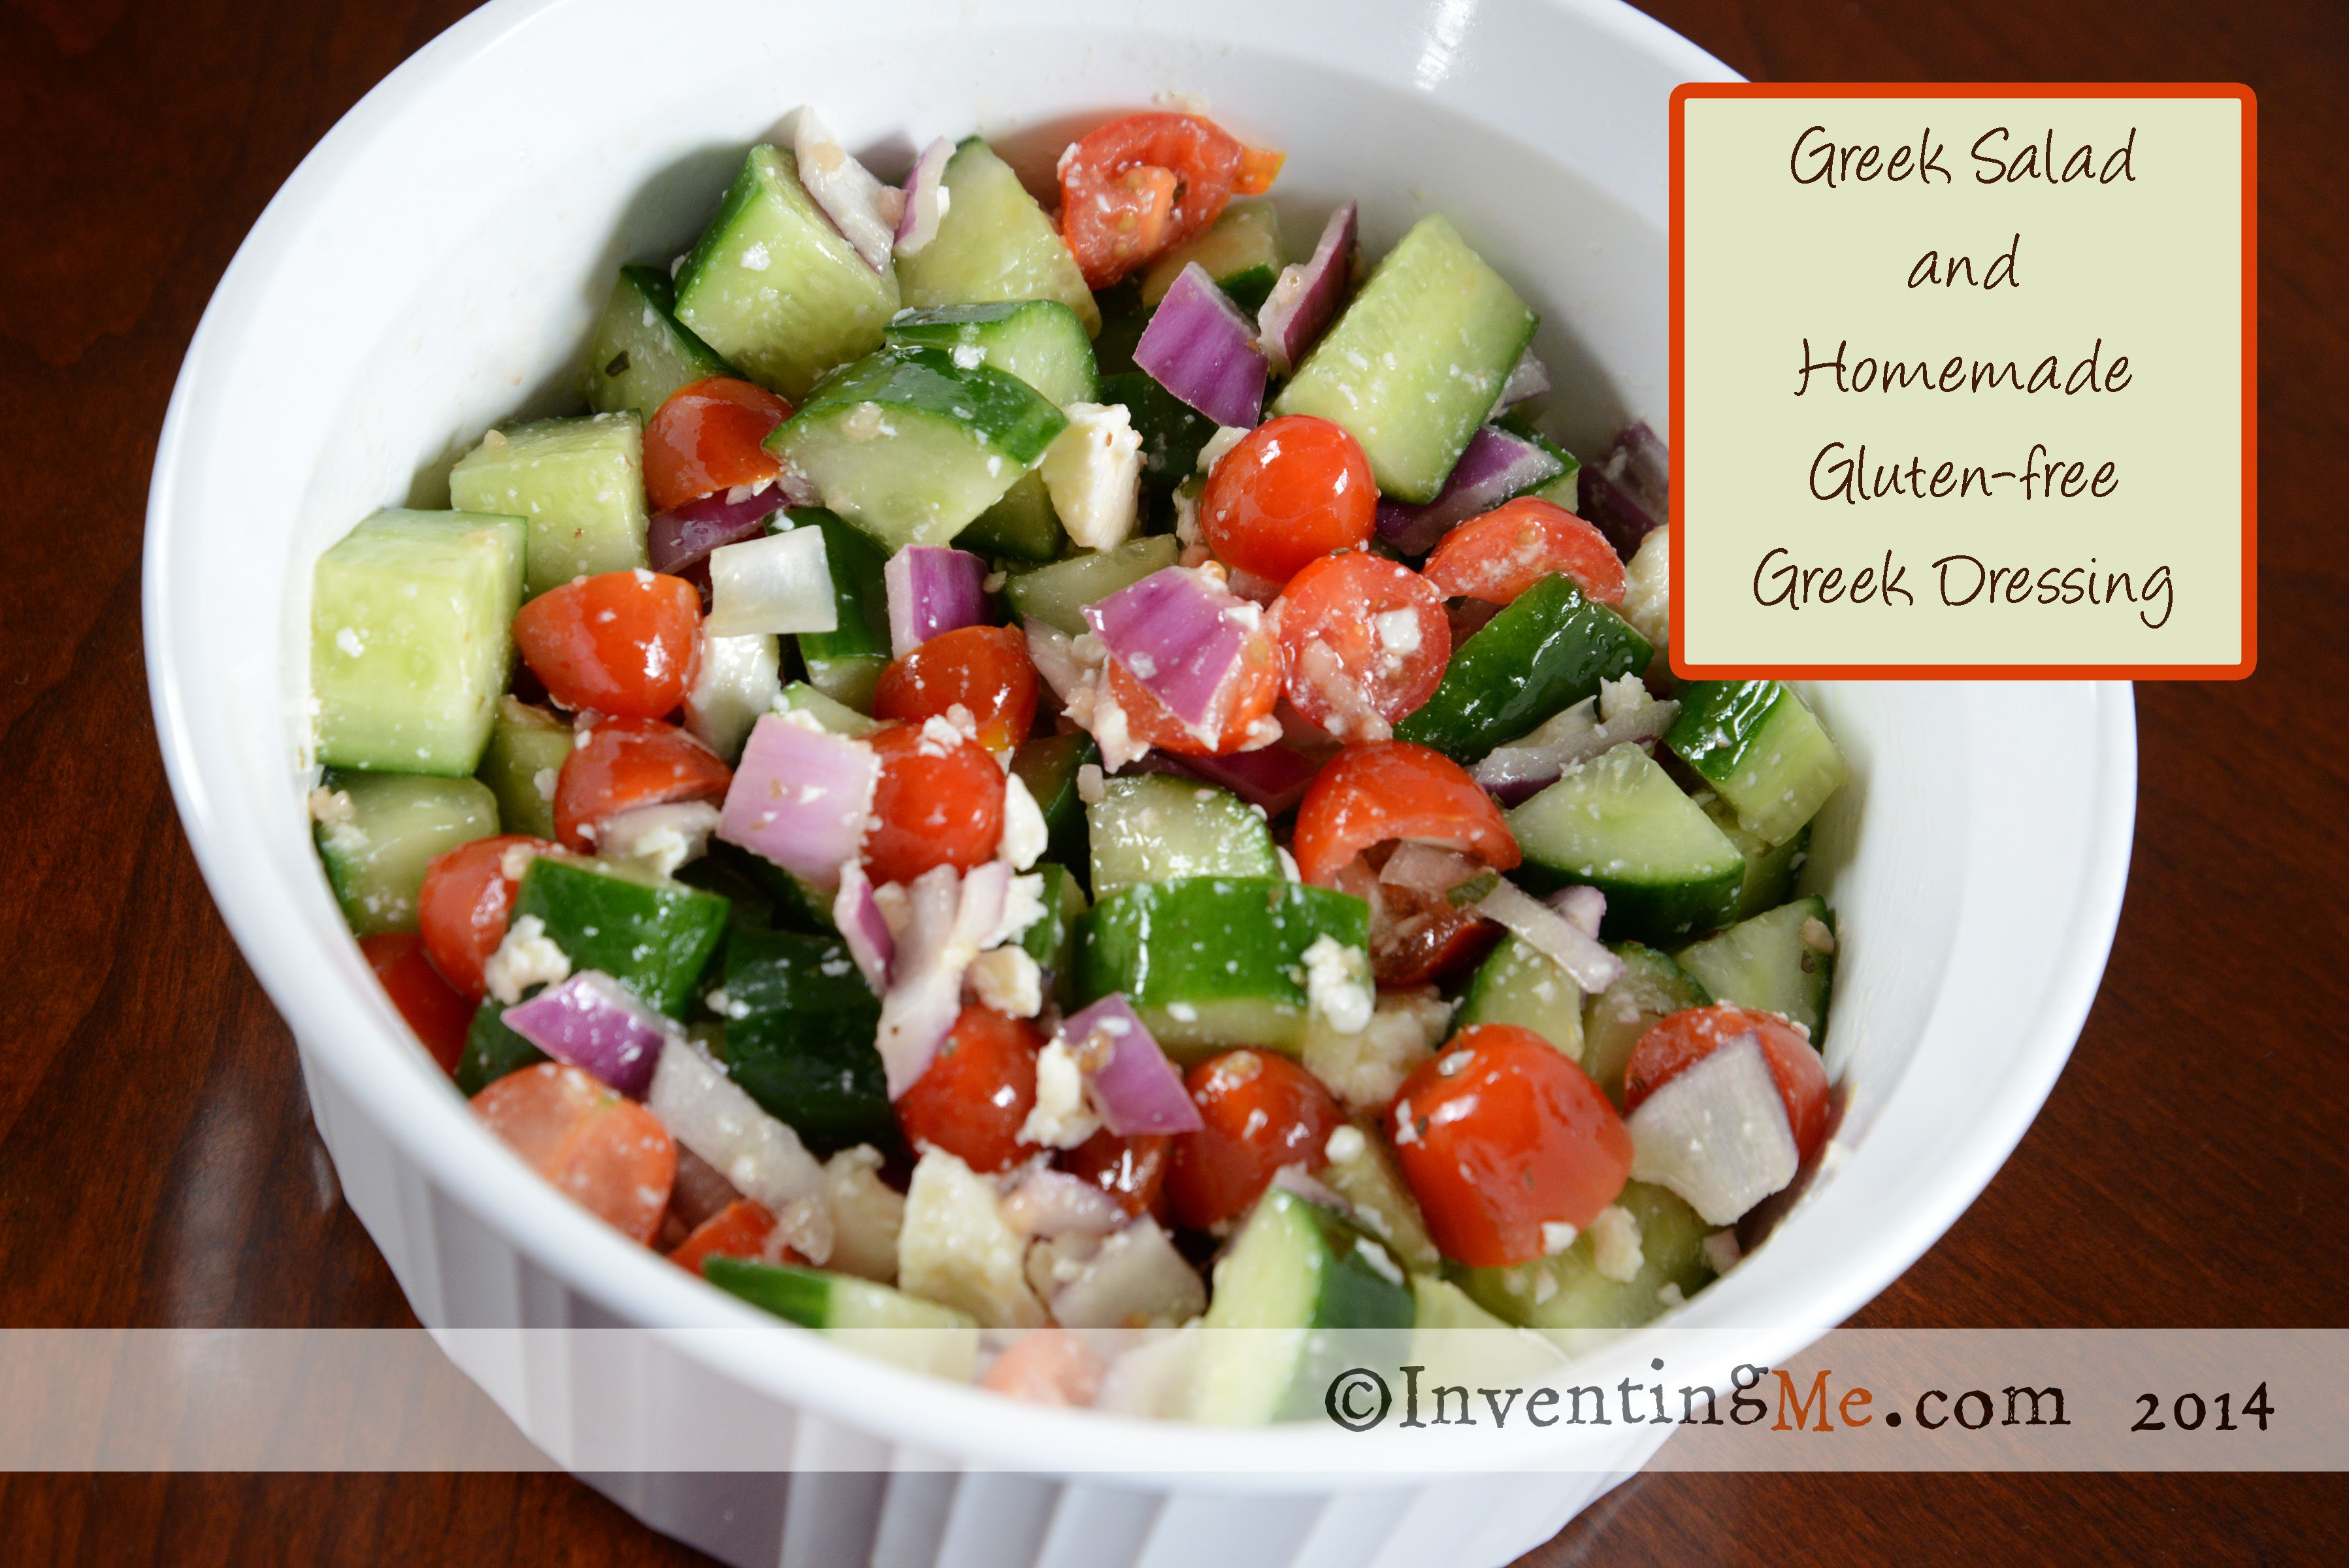 Greek salad with gluten-free homemade Greek salad dressing. Very easy, and very frugal. From inventingme.com